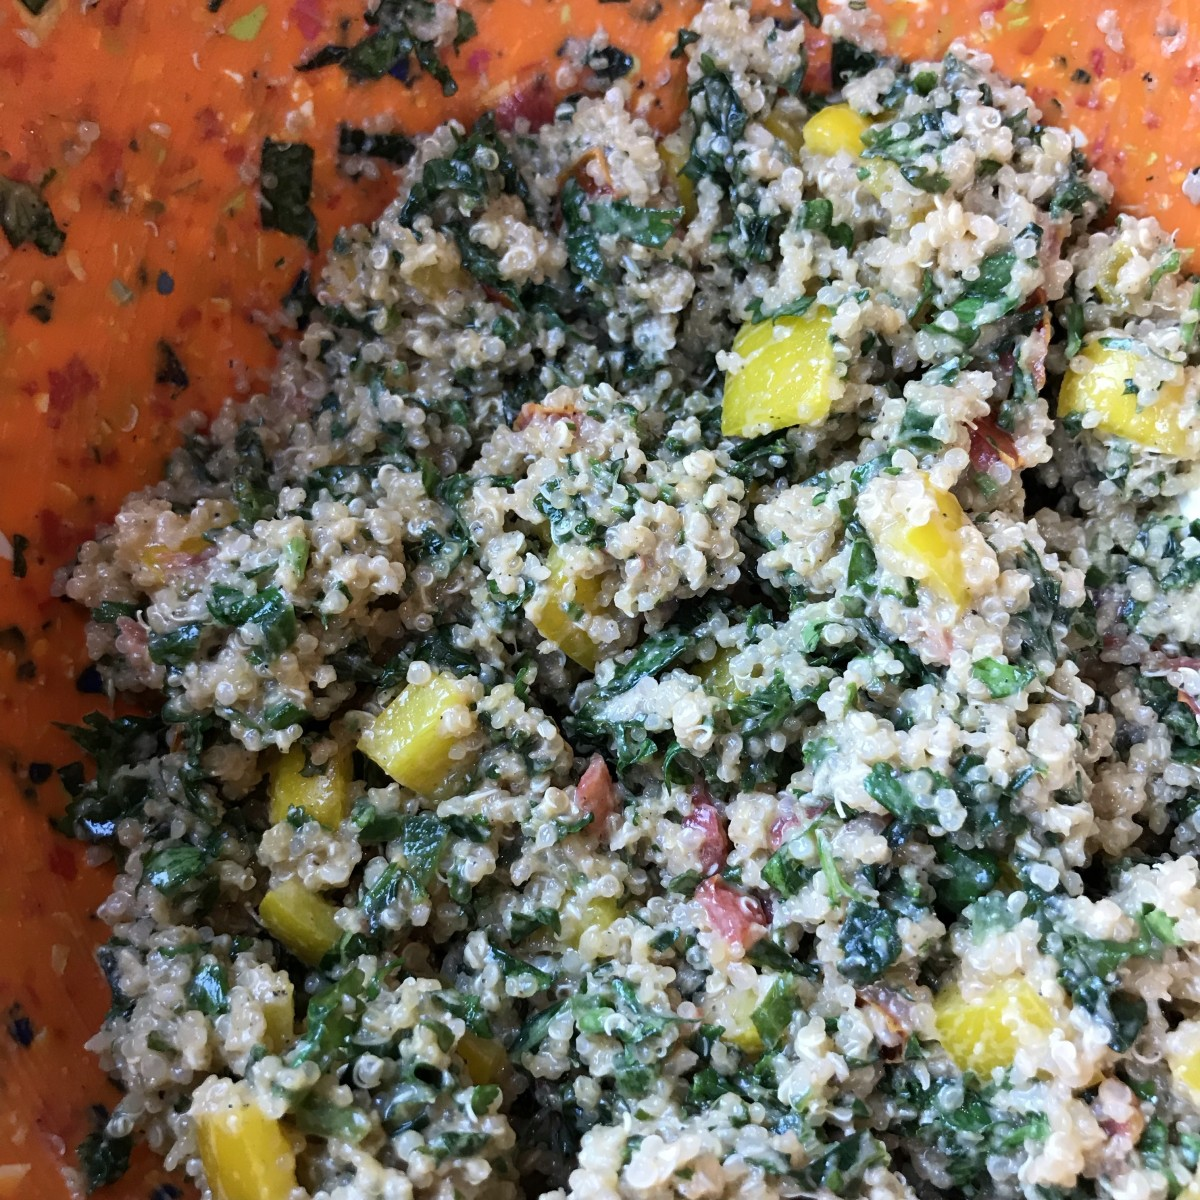 One final toss with the quinoa and this salad is done. This salad is best when chilled for at least 30 minutes and is even better when left overnight!